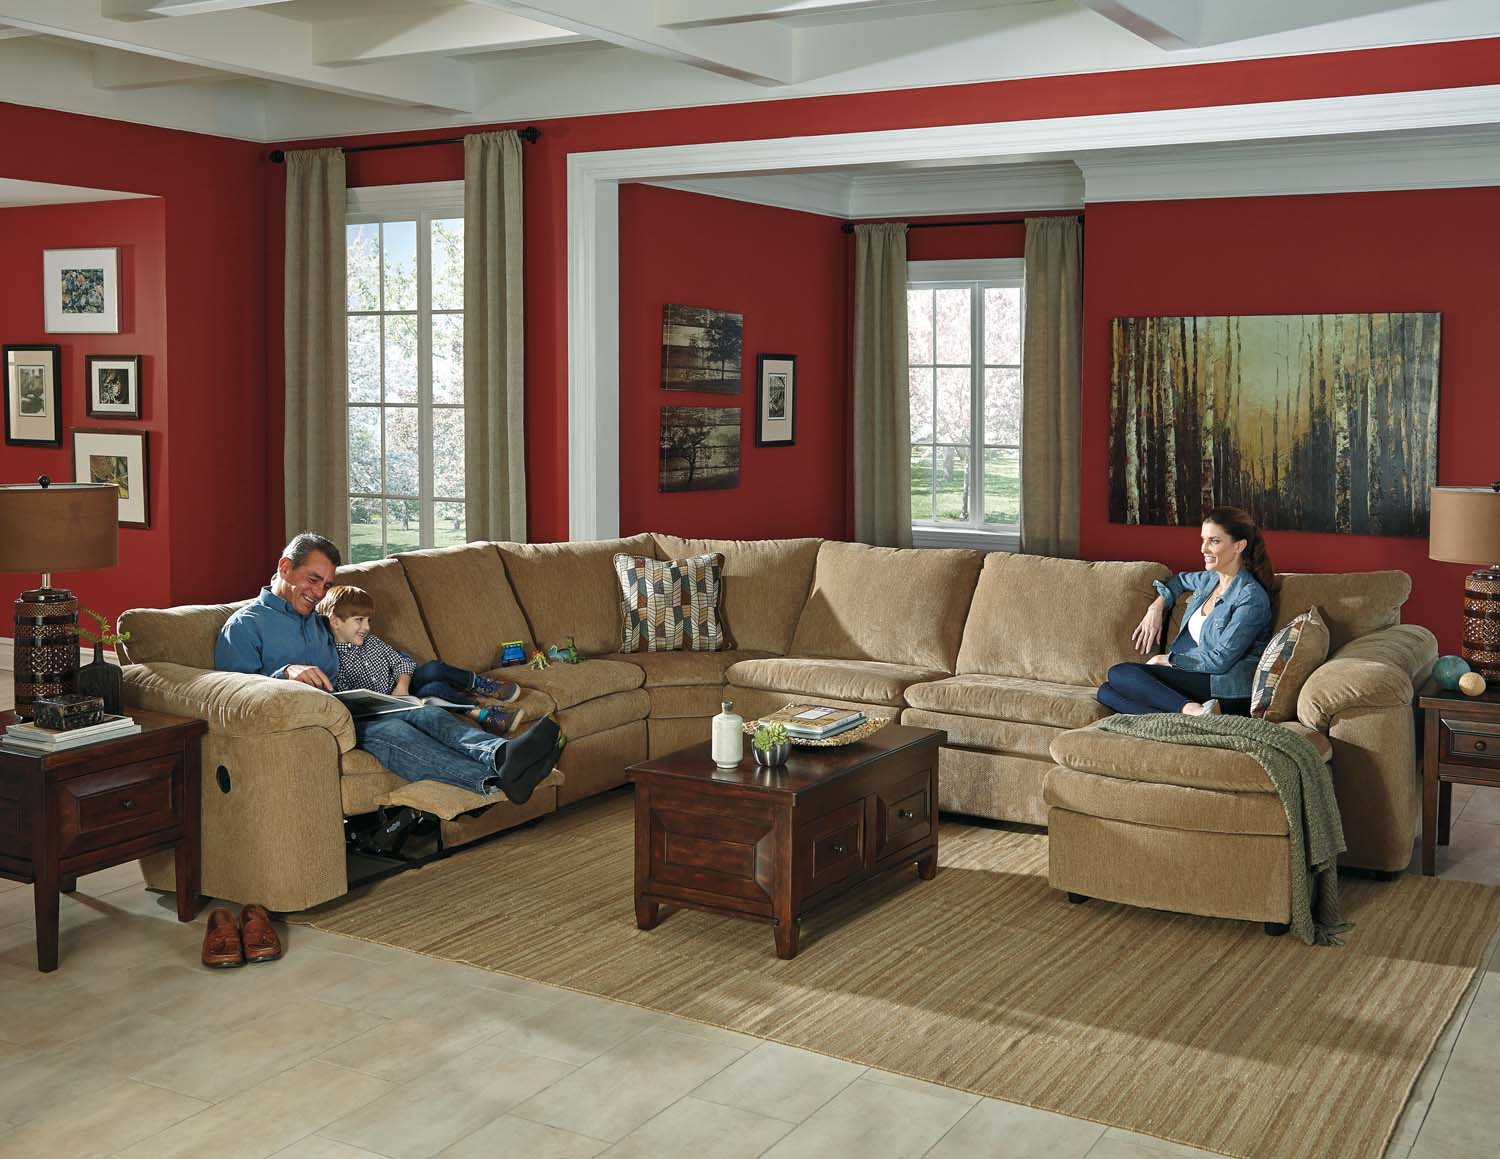 44100S4 in by Ashley Furniture in Kissimmee FL Coats Dune 4